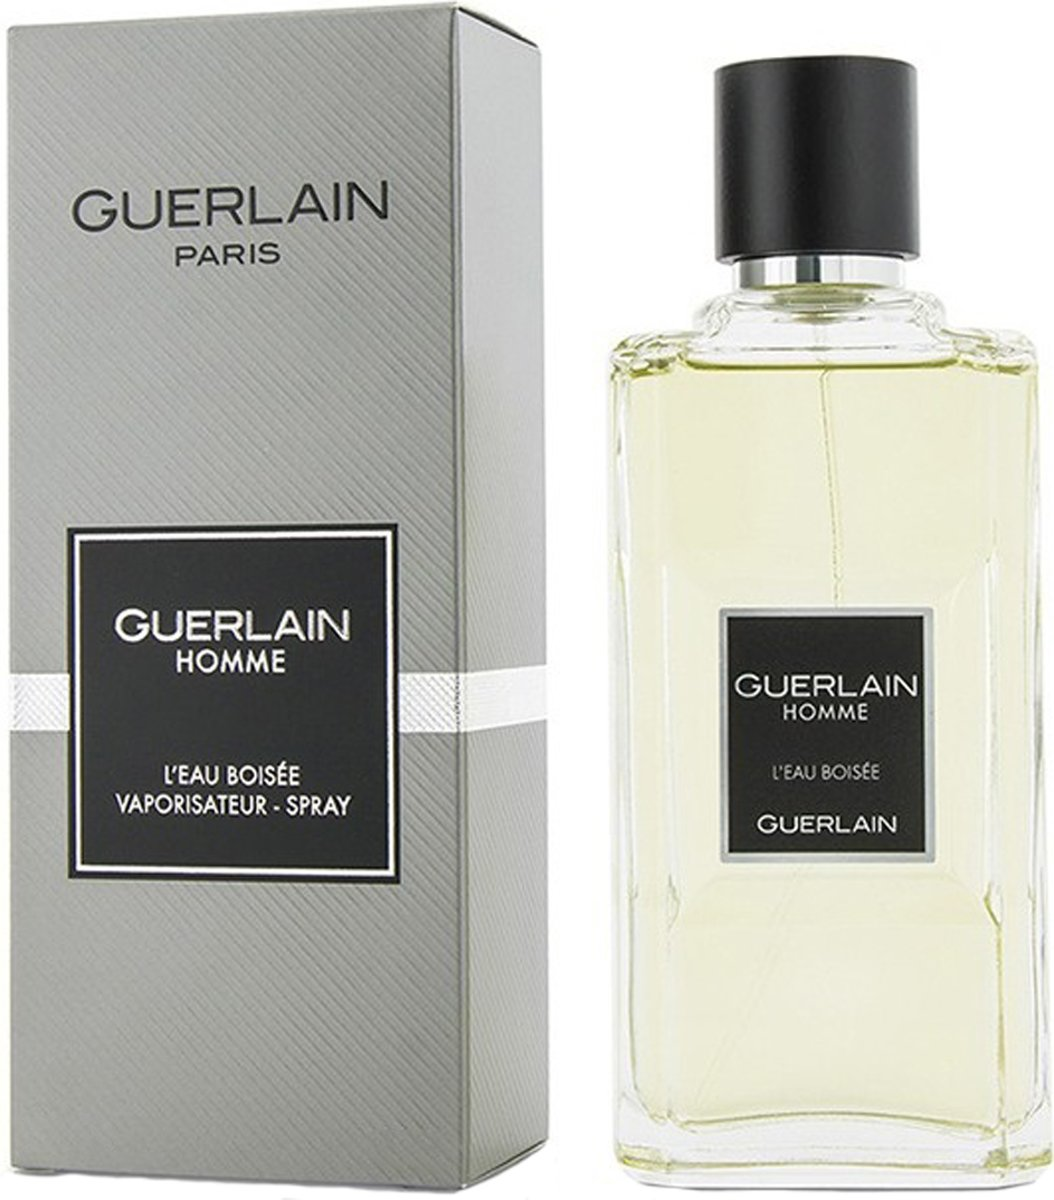 Guerlain Homme Leau Boisee 50ml EDT Spray